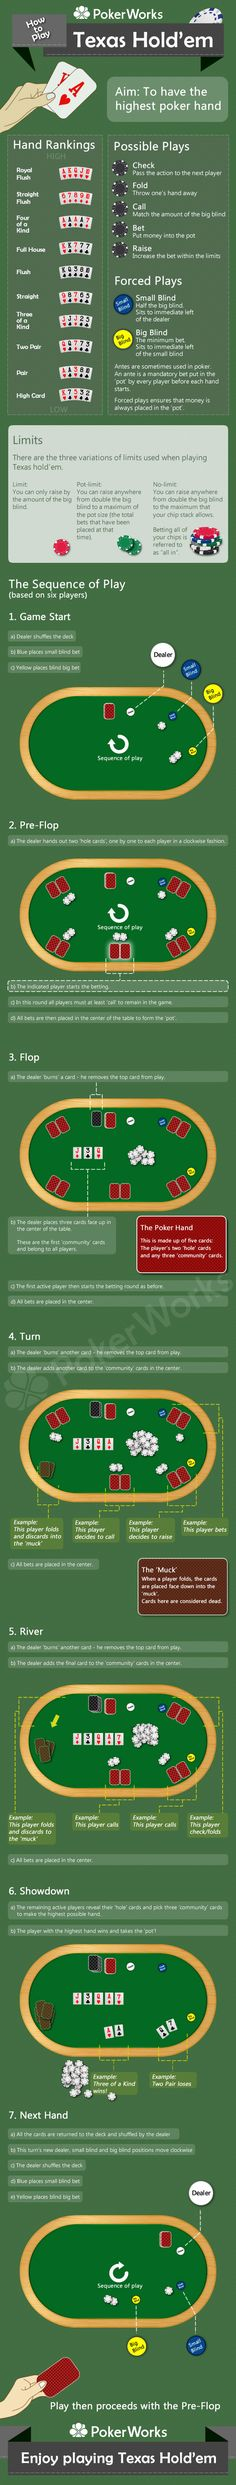 The Most Popular Poker game in the world Texas Hold'em explained in the simple, down to earth language for the beginners of poker. Casino Party Games, Casino Night Party, Casino Theme Parties, Casino Royale, Las Vegas, Poker Hands, Pokerface, Poker Party, Poker Night